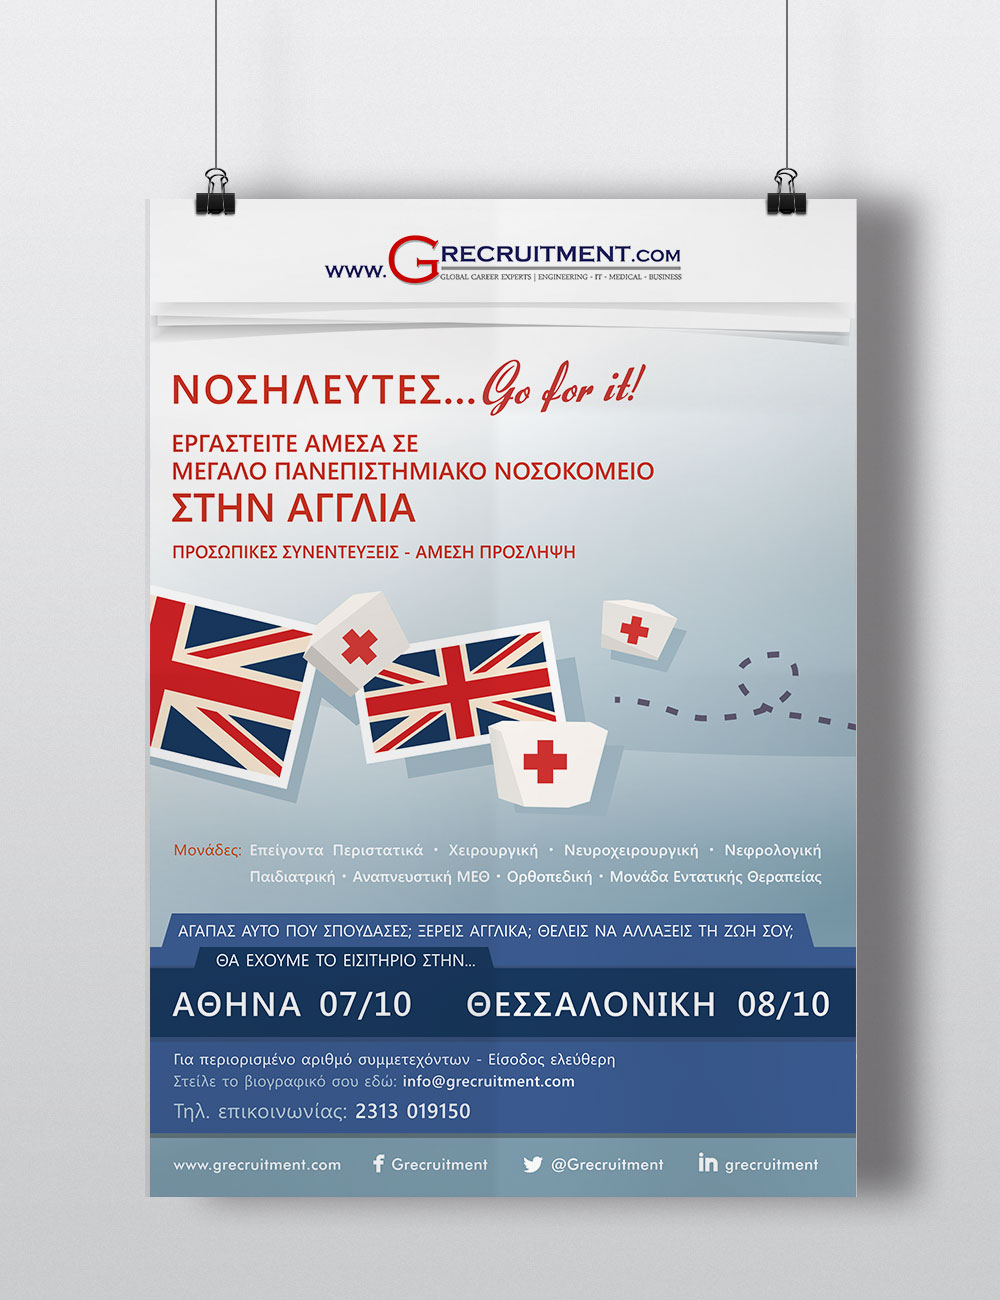 Poster made for Grecruitment, an international Recruitment company based in Thessaloniki, Greece